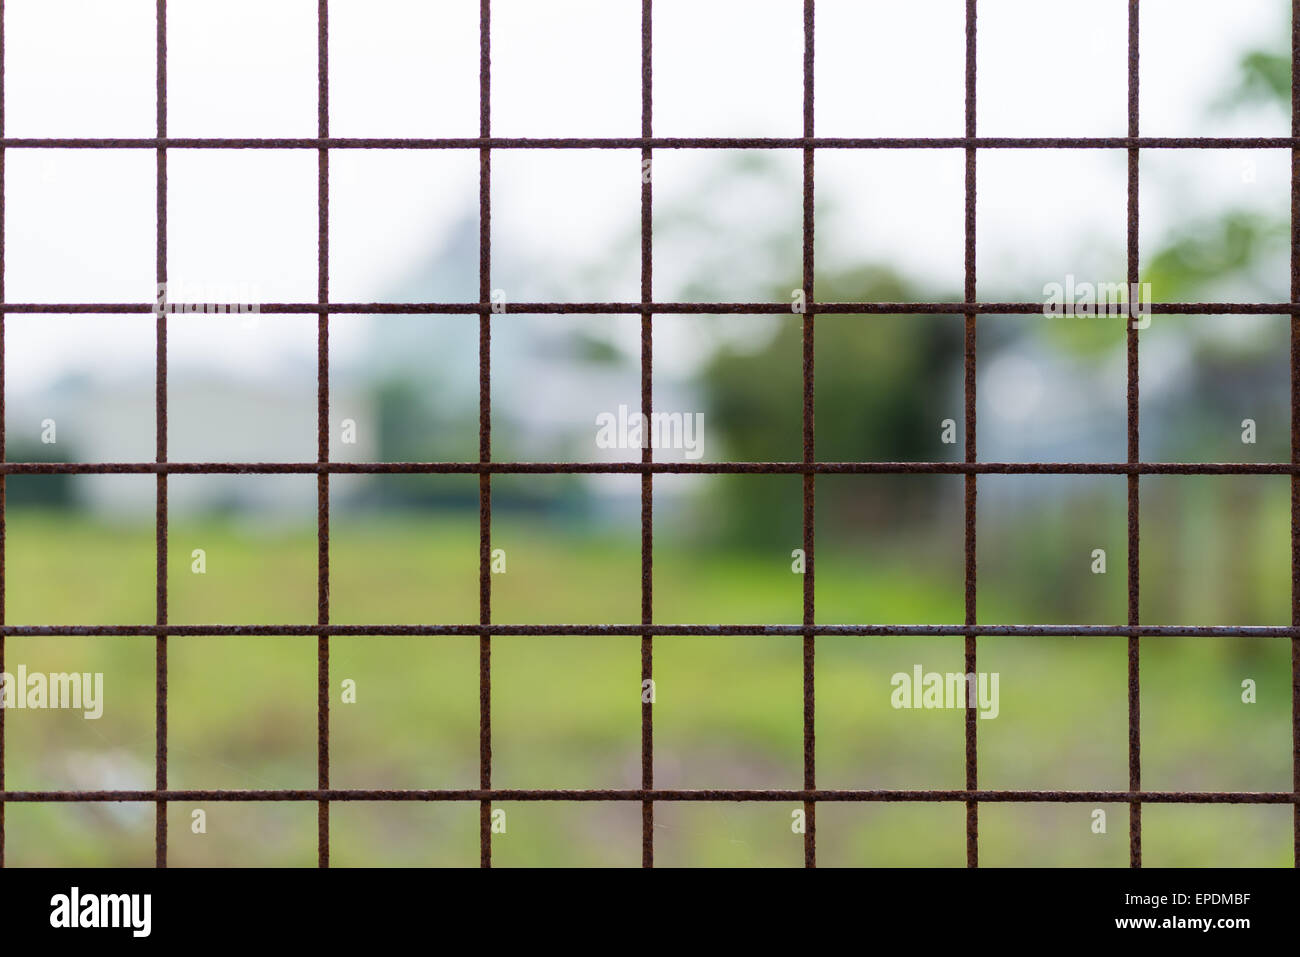 A rusty wire fence forming a pattern of squares with a blurry nature background. - Stock Image